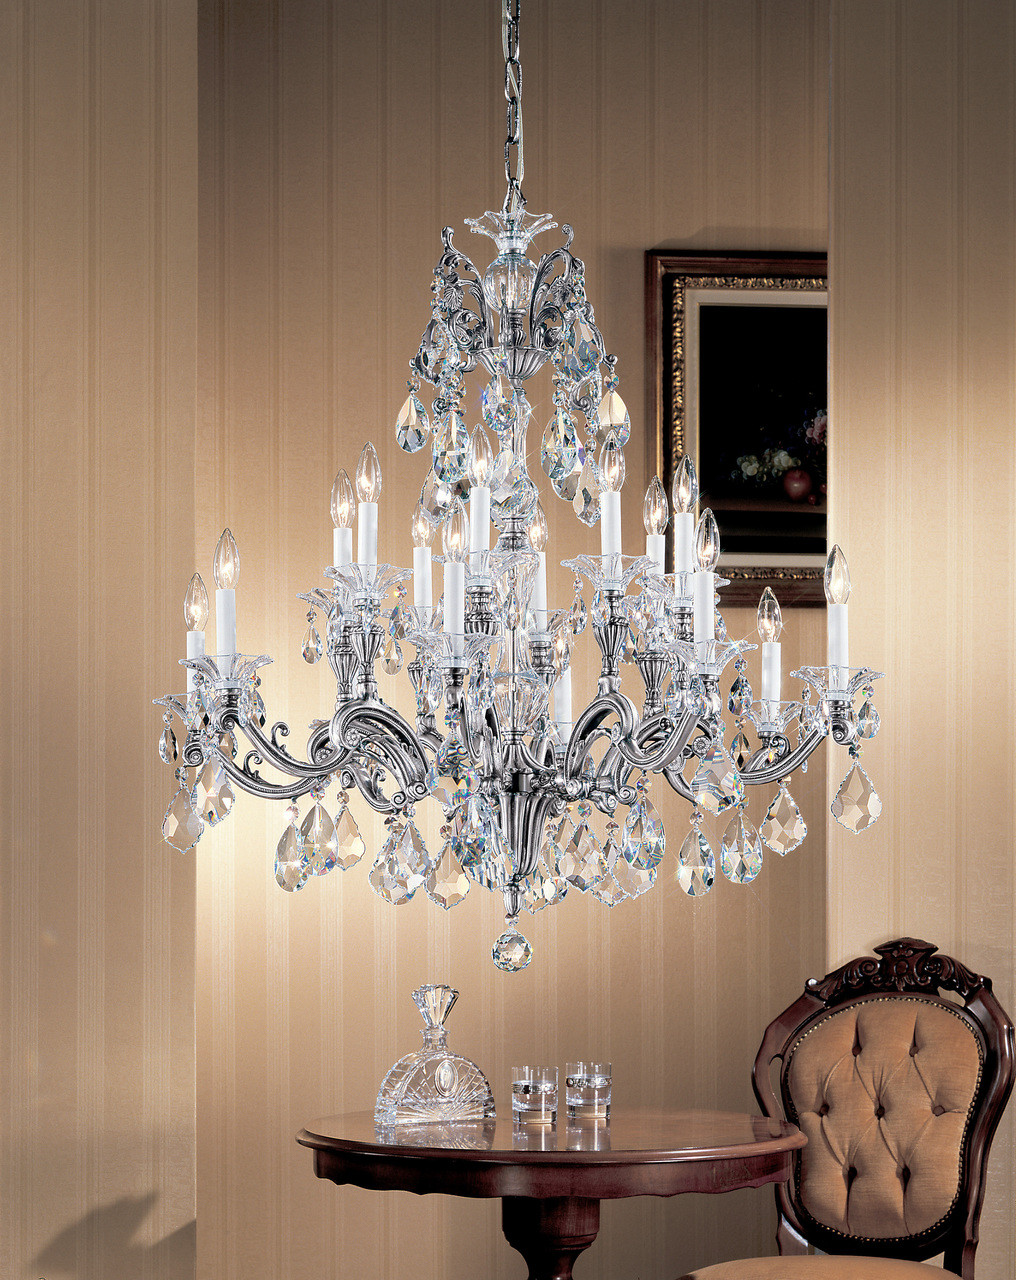 Classic Lighting 57116 MS CSA Via Firenze Crystal Chandelier in Millennium  Silver (Imported from Spain)